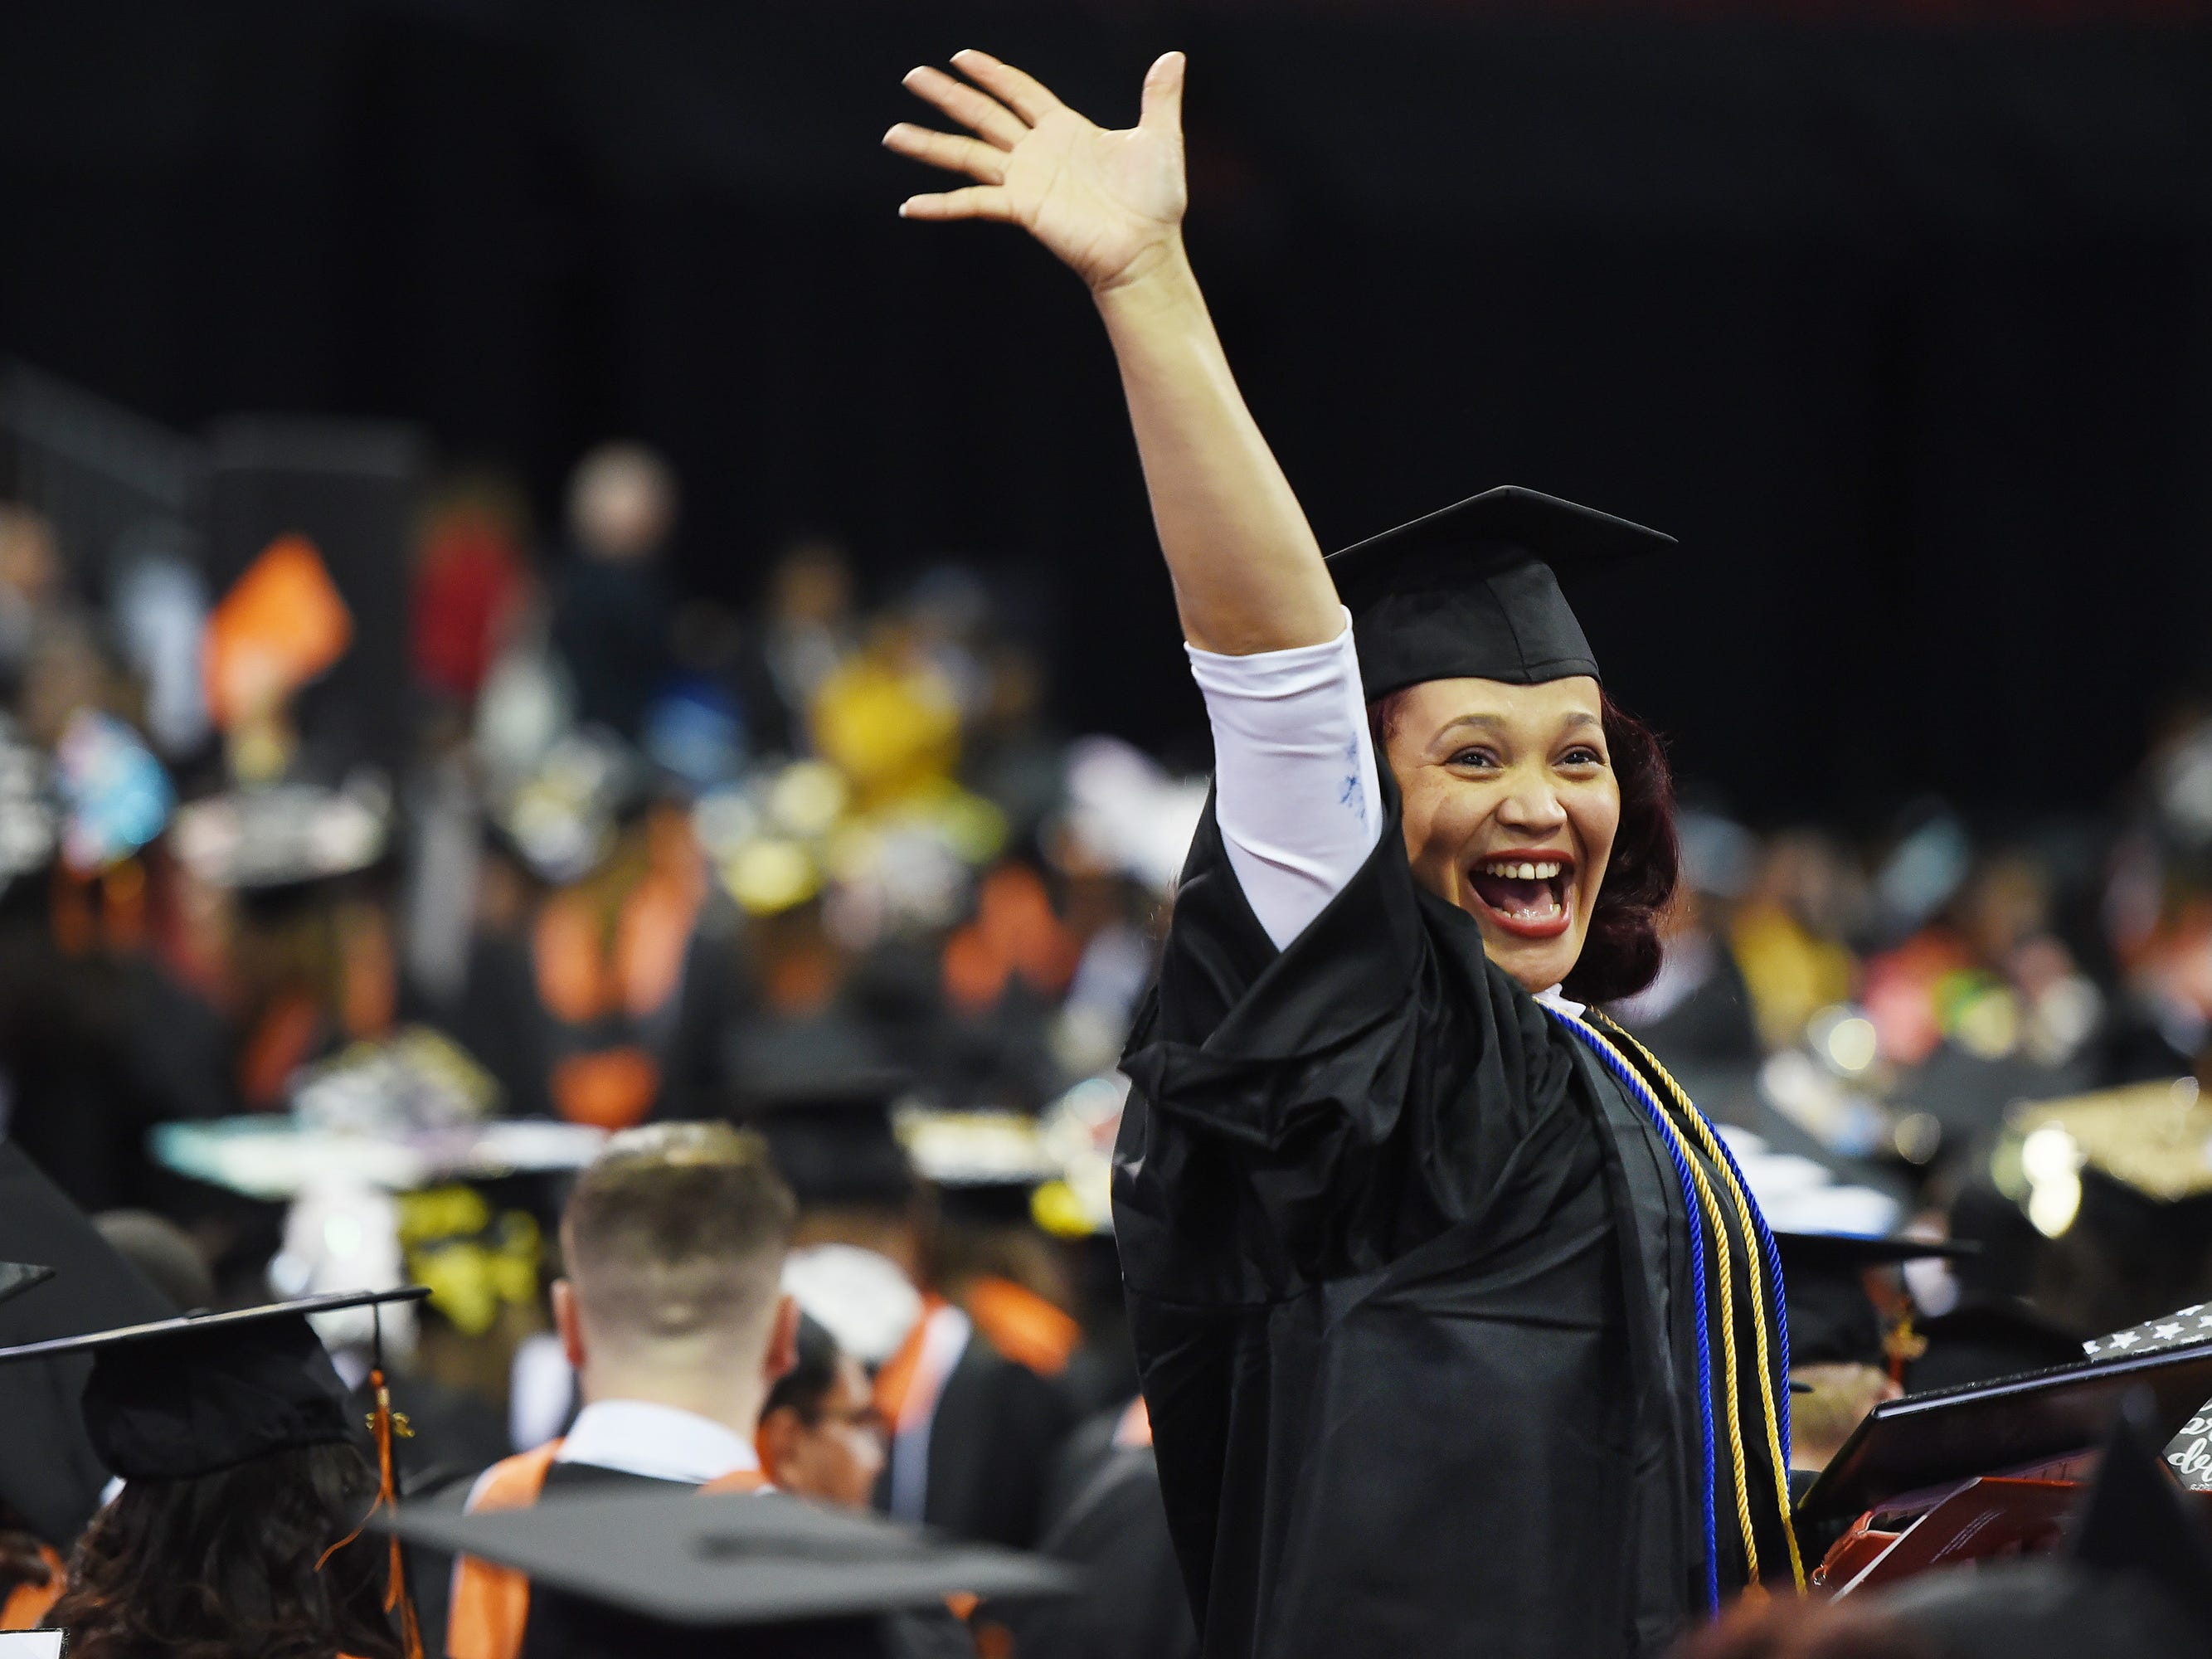 Karen Sano of Passaic, Major in Sociology, jubilantly waves during the William Paterson University 2019 Commencement at the Prudential Center in Newark on 05/15/19.